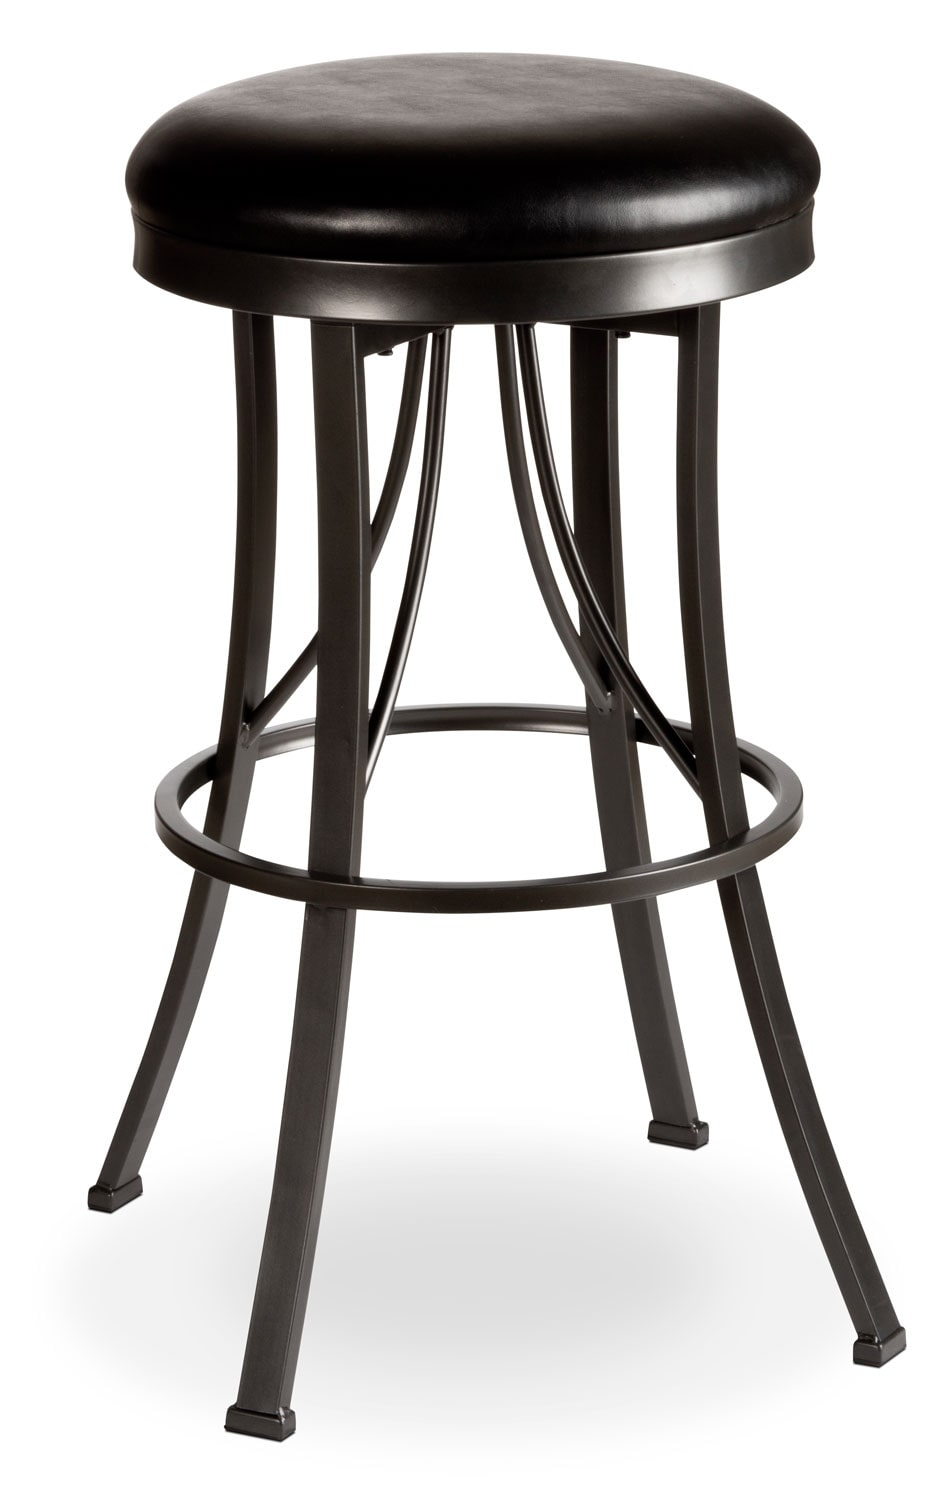 Ontario Backless Counter-Height Swivel Stool